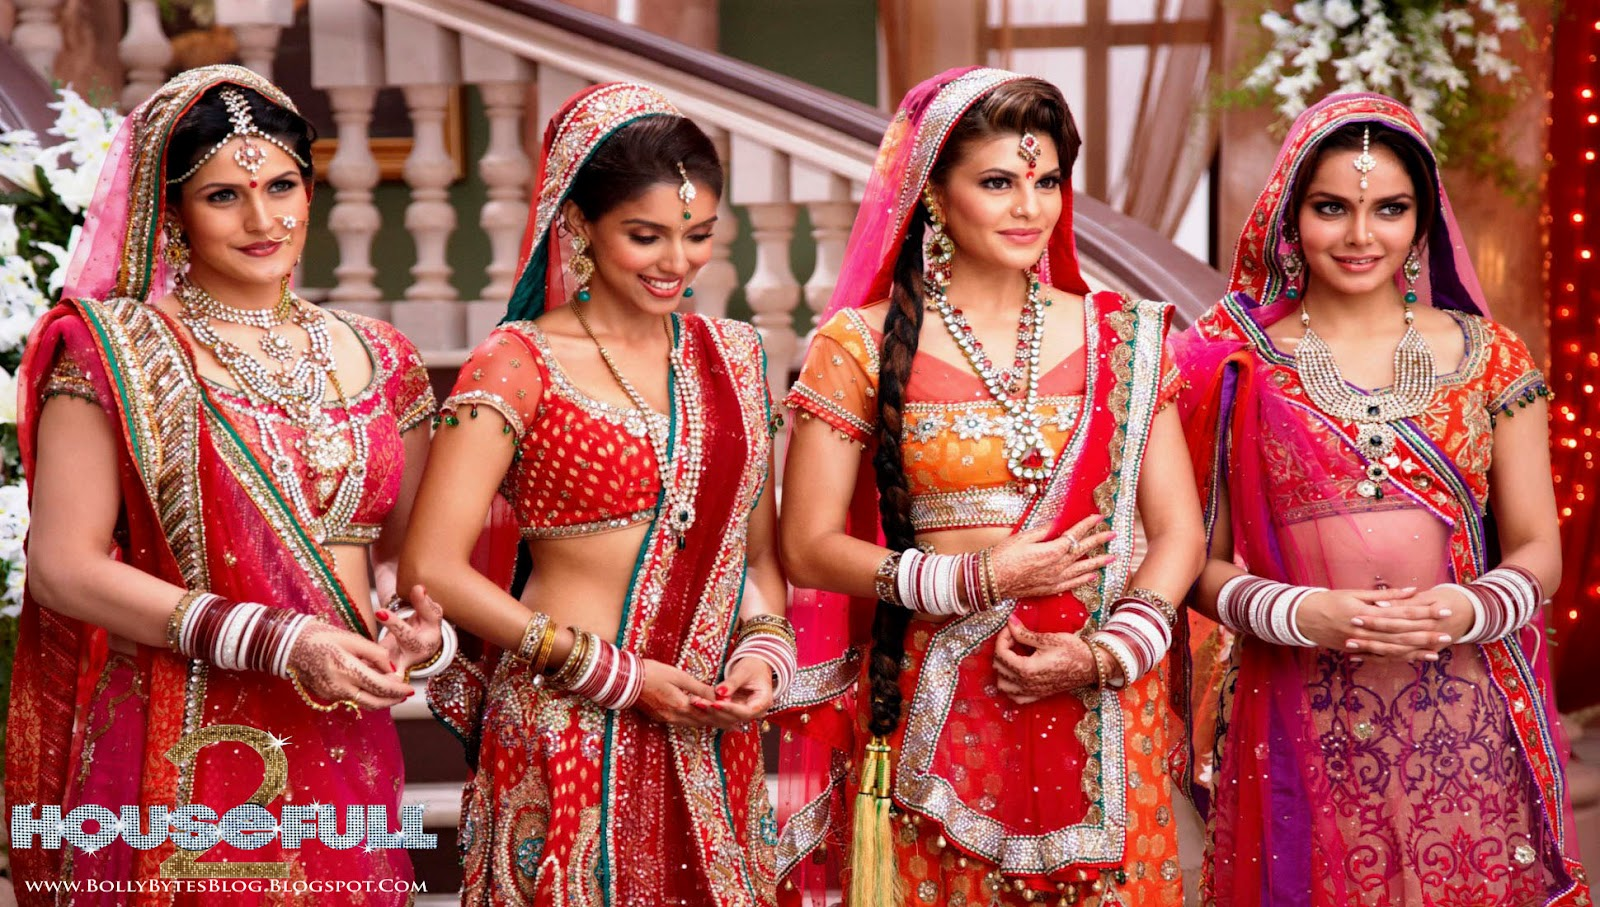 http://4.bp.blogspot.com/-GDYrBSumtCg/T3VvyBXtZ-I/AAAAAAAAFQ4/da5grkvBH98/s1600/Housefull-2-Red-Hot-Marriage-Dress-Asin-+Jacqueline-Fernandez-Zarine-Khan-Shahzan-Padamsee-HQ-Wallpapers-07.jpg